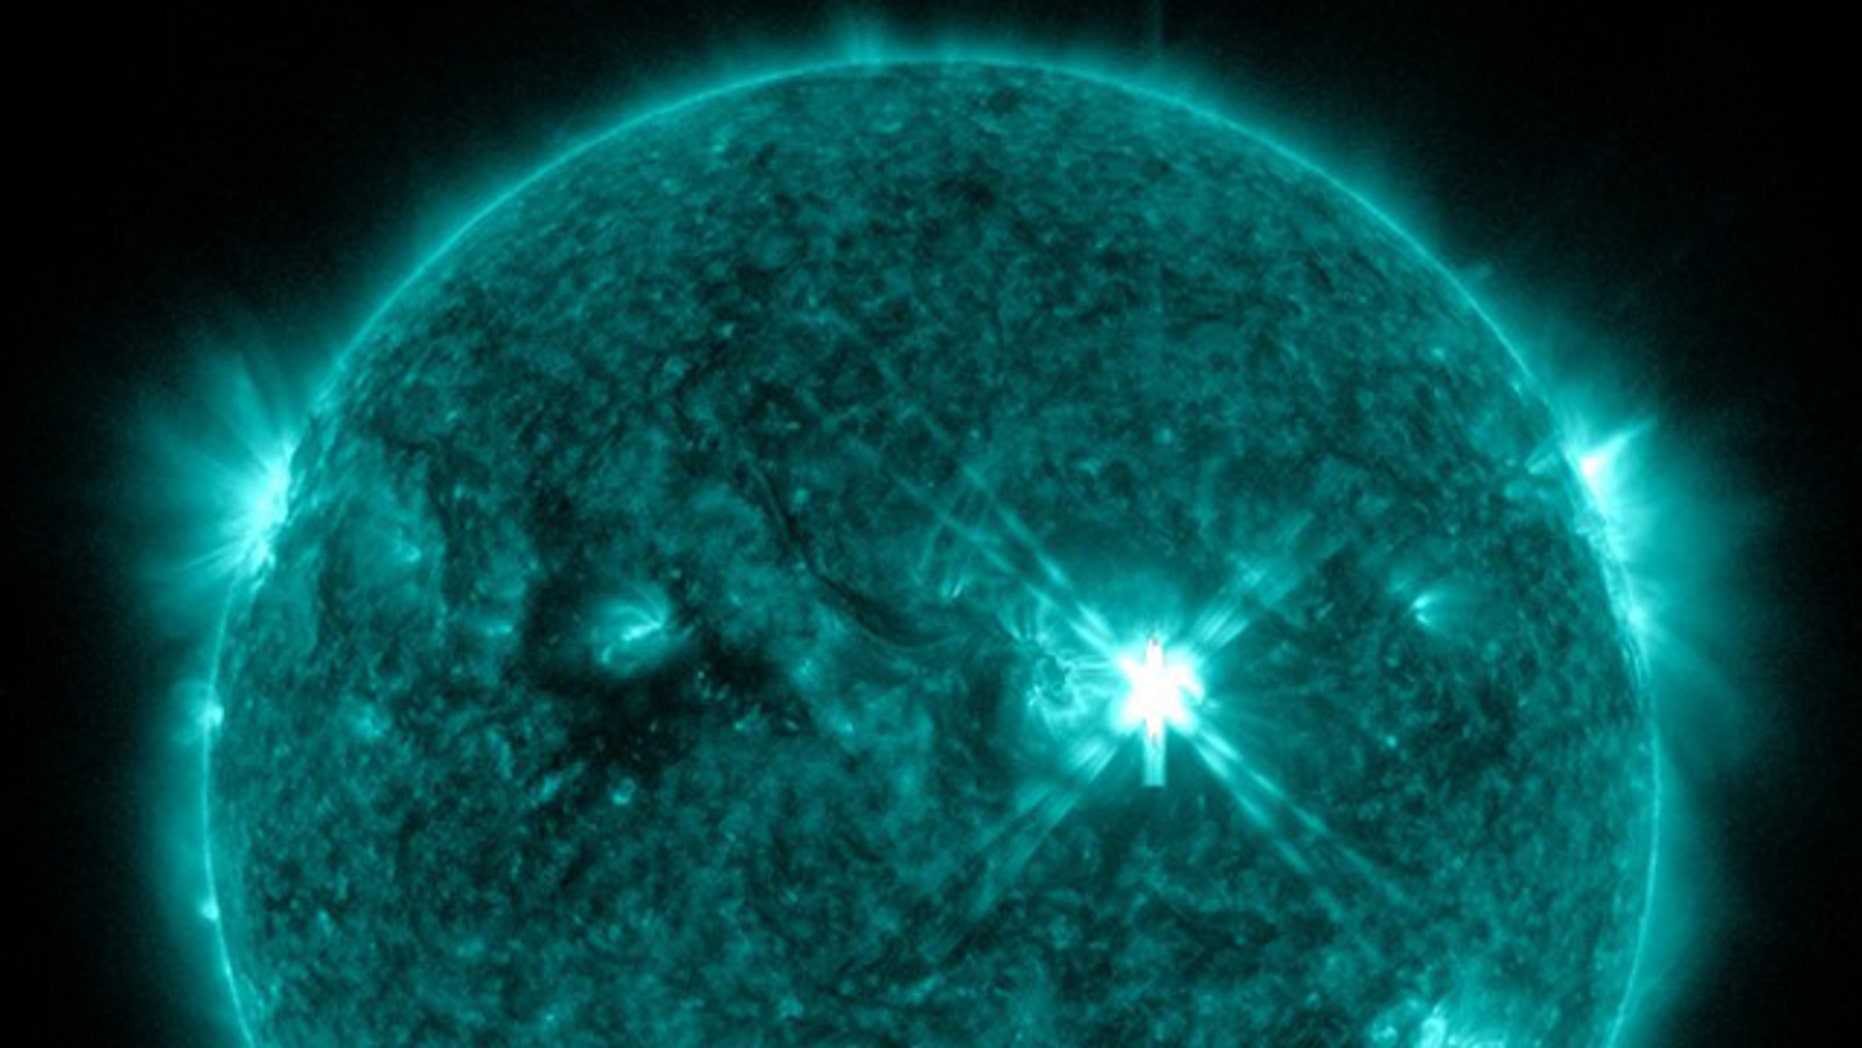 Sept. 6, 2011: This image taken by NASA's Solar Dynamics Observatory watching the sun shows a powerful solar flare (center right) just minutes after it erupted on 6:20 p.m. EDT (2220 GMT).